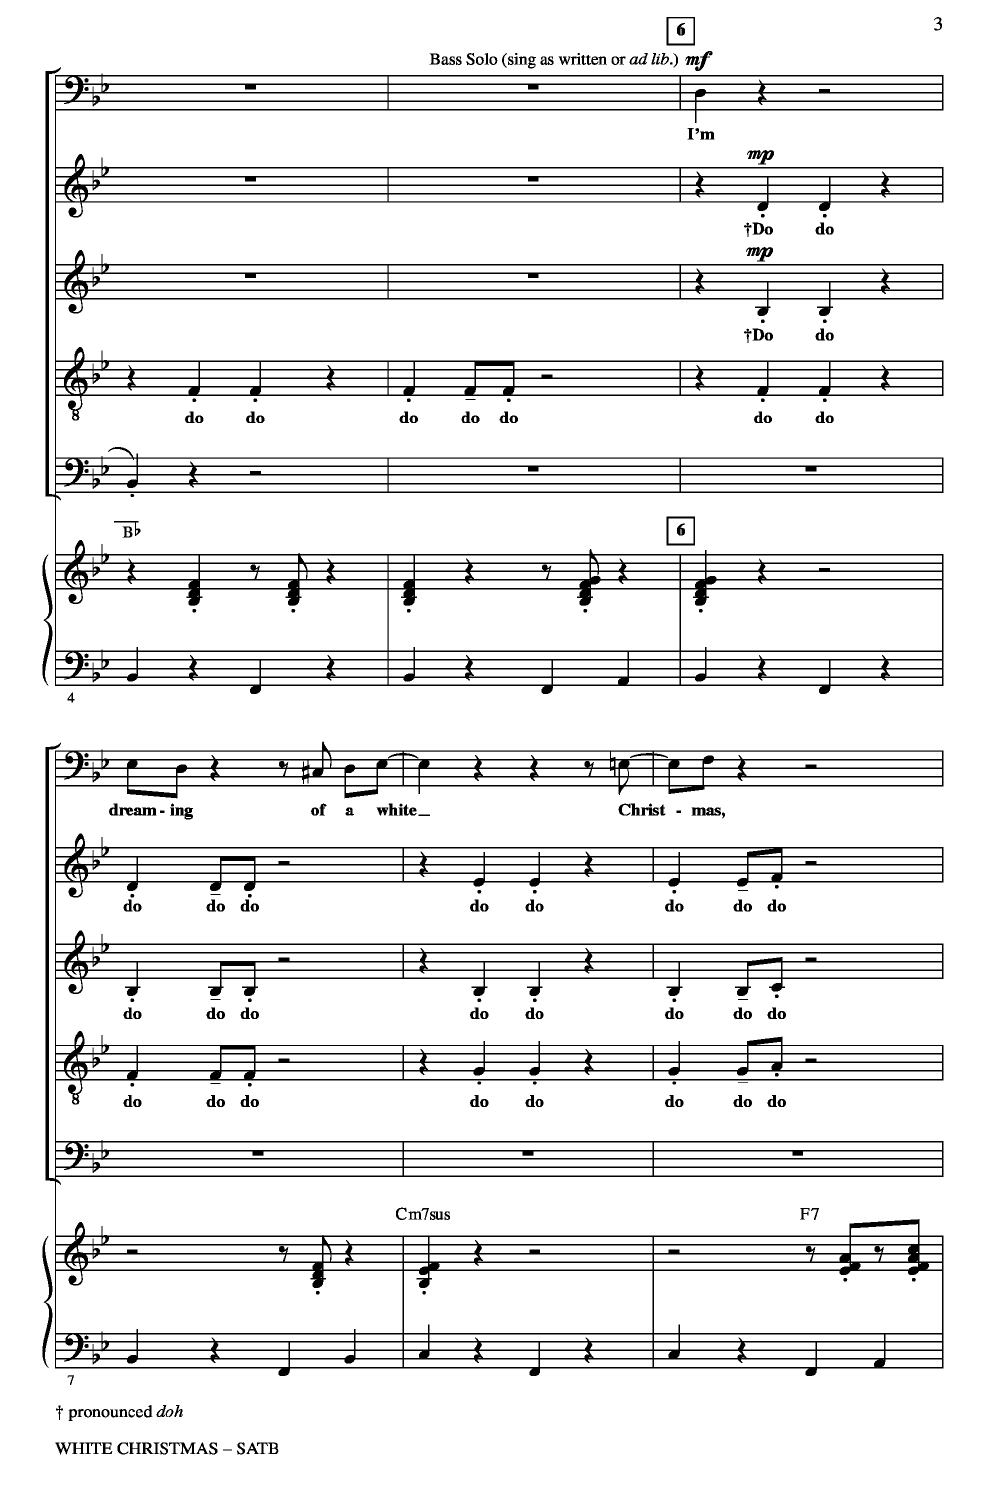 White Christmas (SATB ) arr. Audrey Snyder| J.W. Pepper Sheet Music